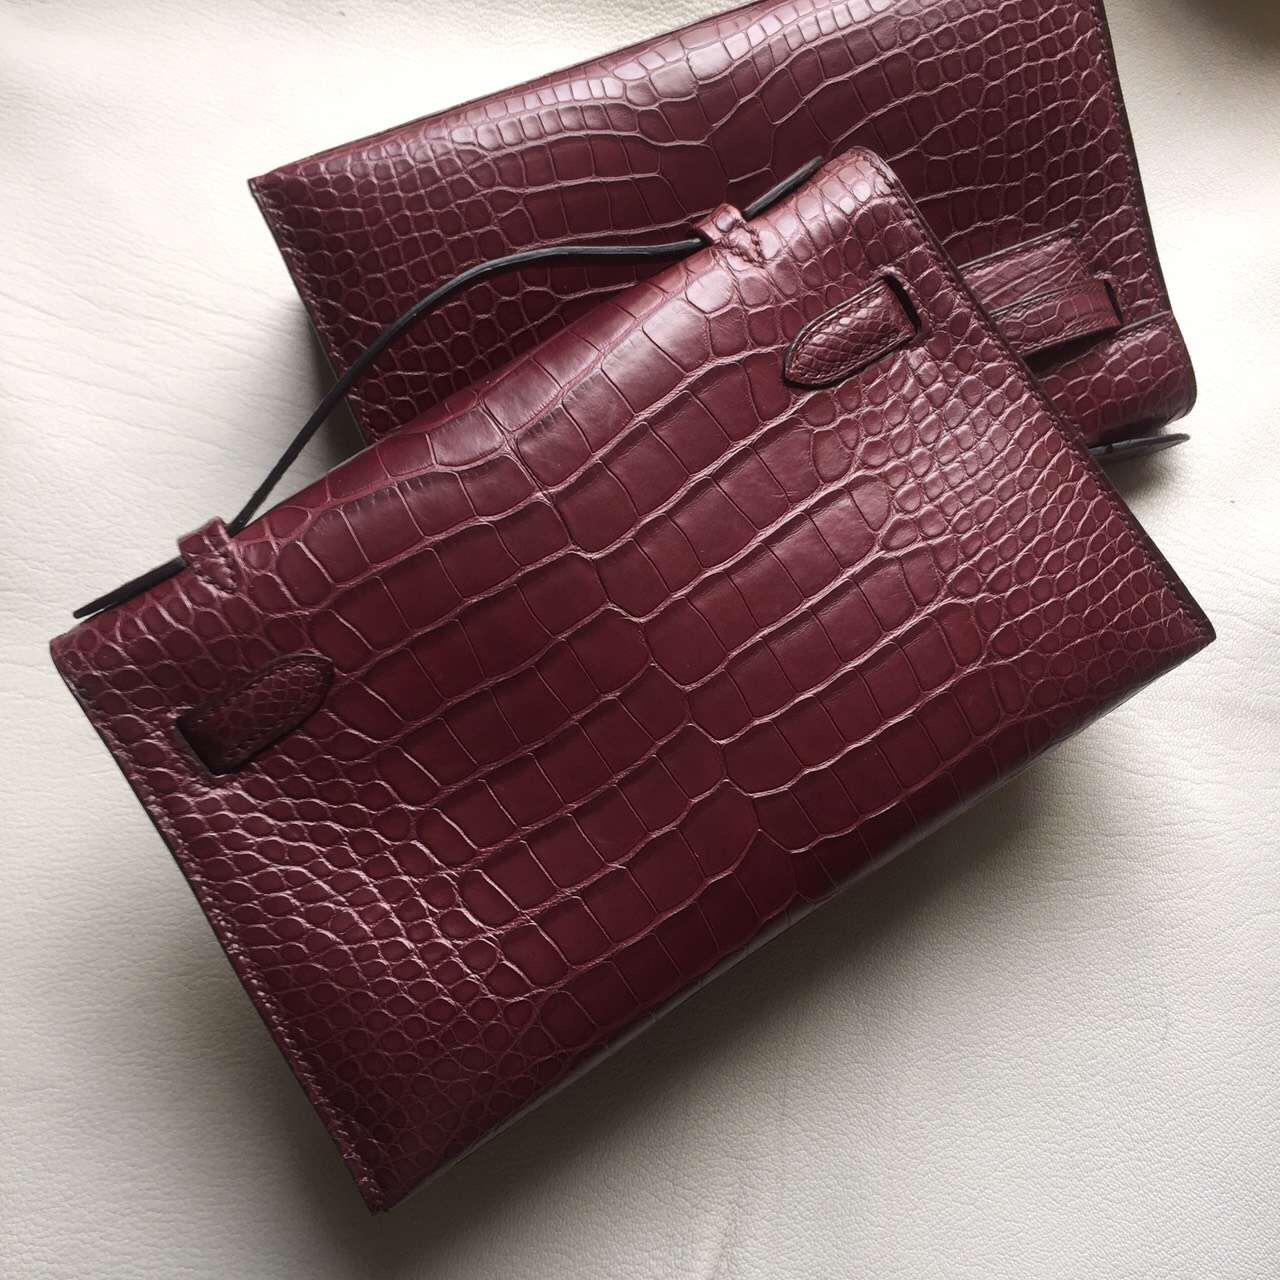 Wholesale Hermes Wine Red Crocodile Matt Leather Mini Kelly Clutch Bag